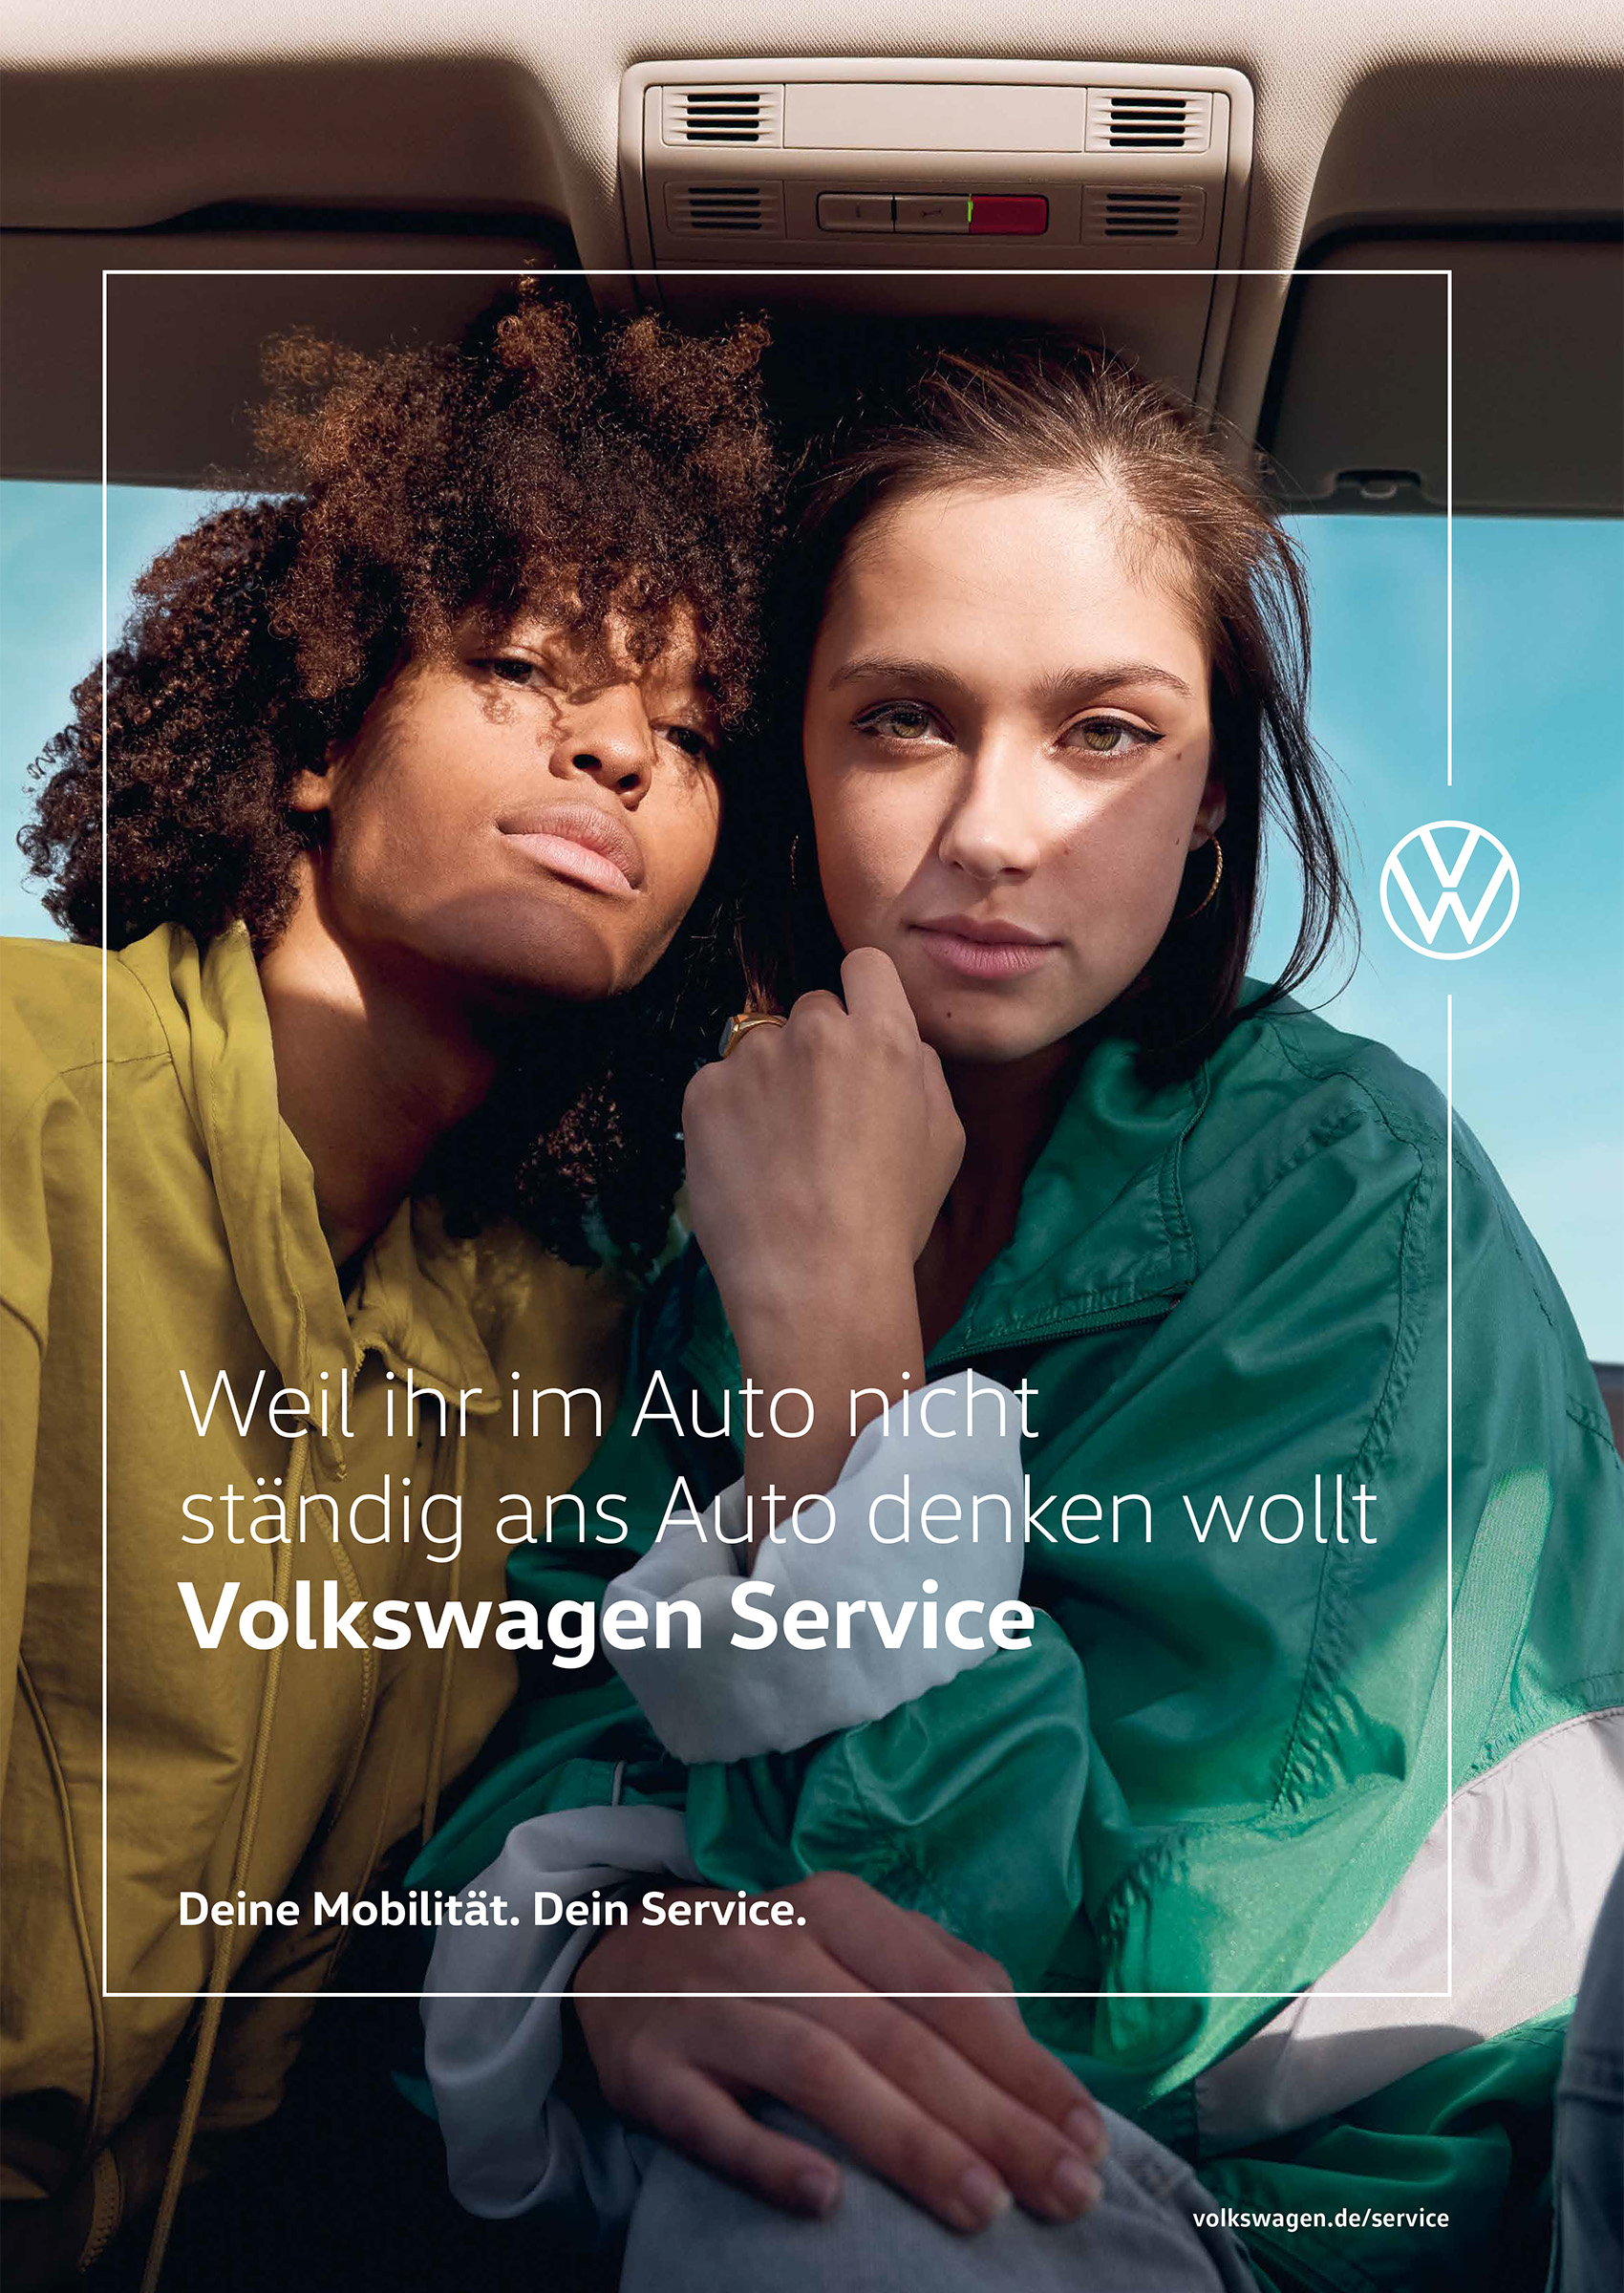 Photographer Cem Guenes | Agency Voltage | Client Volkswagen